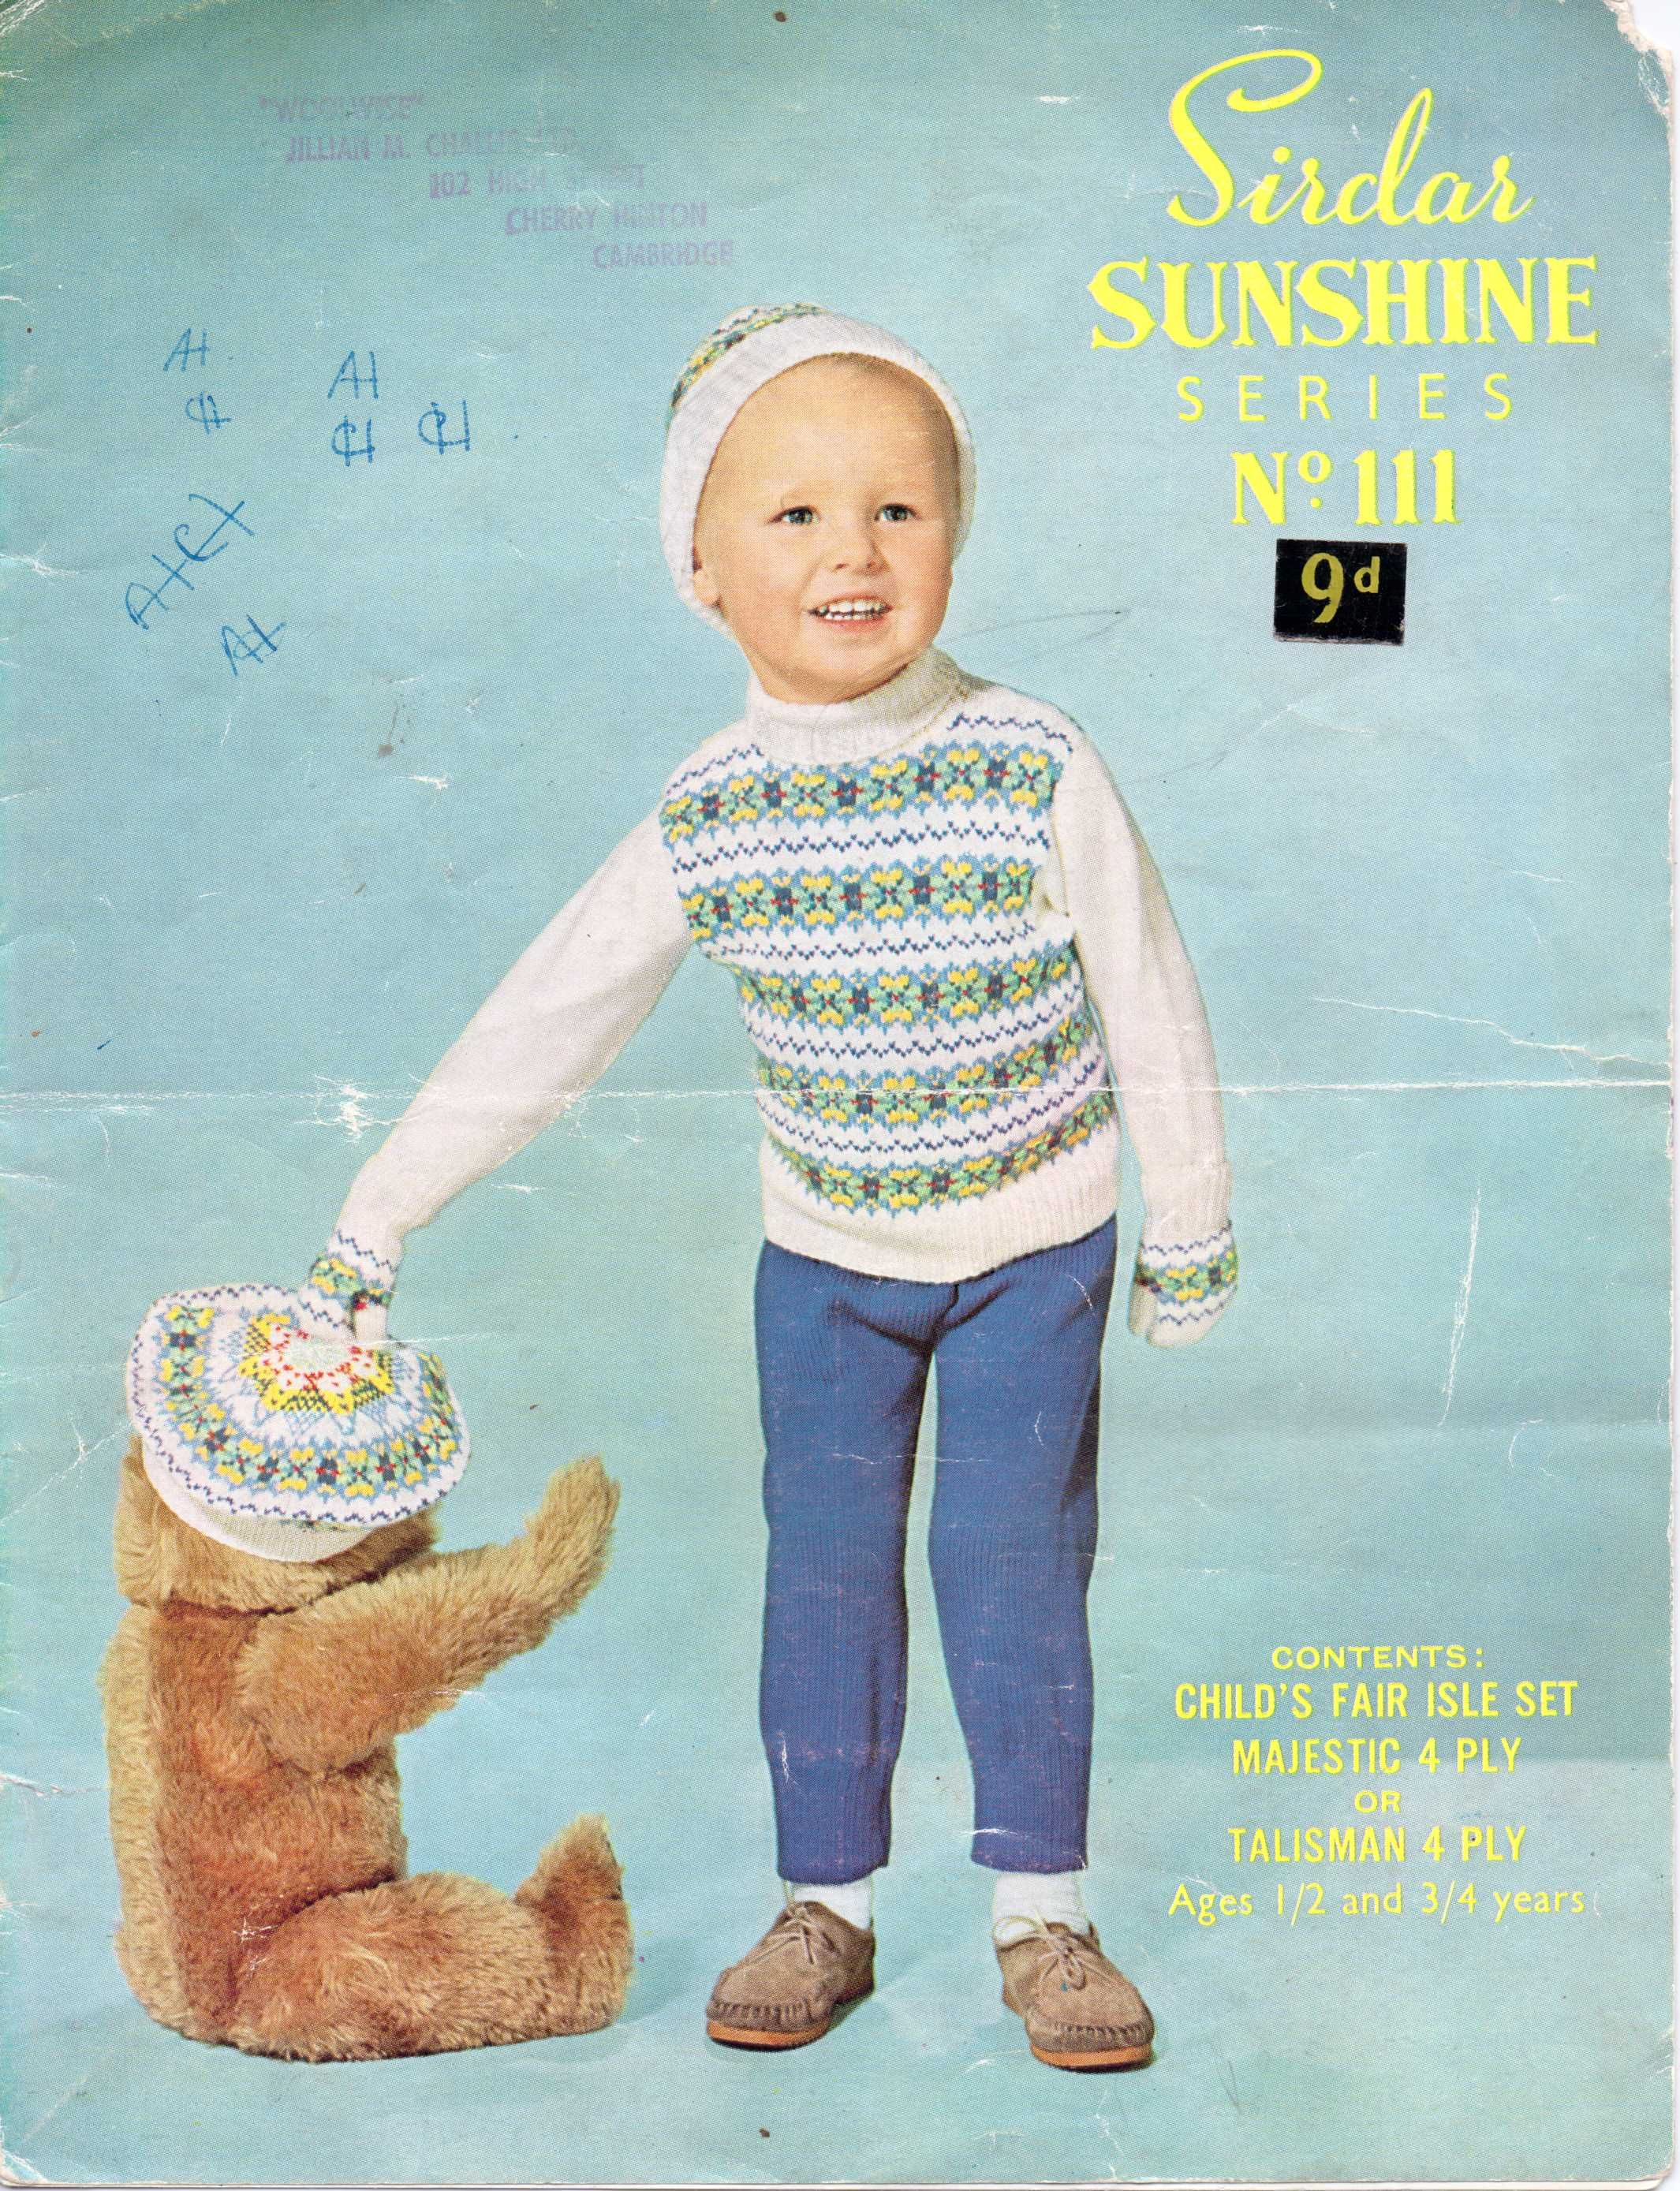 Free patterns fair isle and colourwork 3 childrens patterns childs fair isle jumper and hat free vintage knitting patterns bankloansurffo Gallery